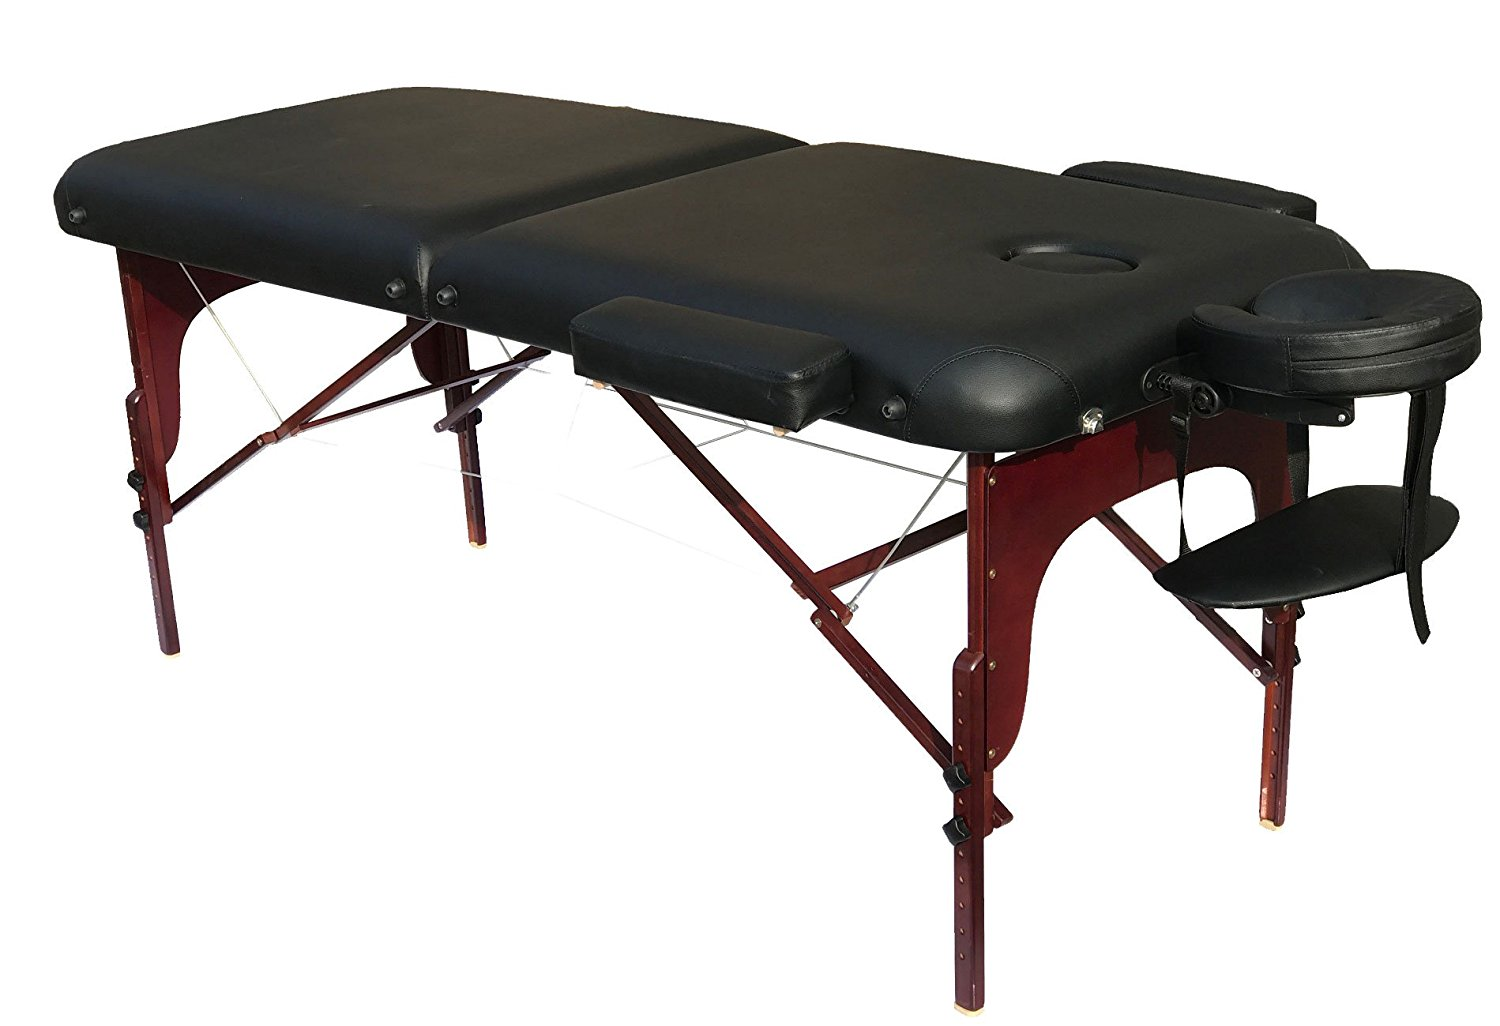 imageservice portable product table imageid recipename deluxe massage profileid best in